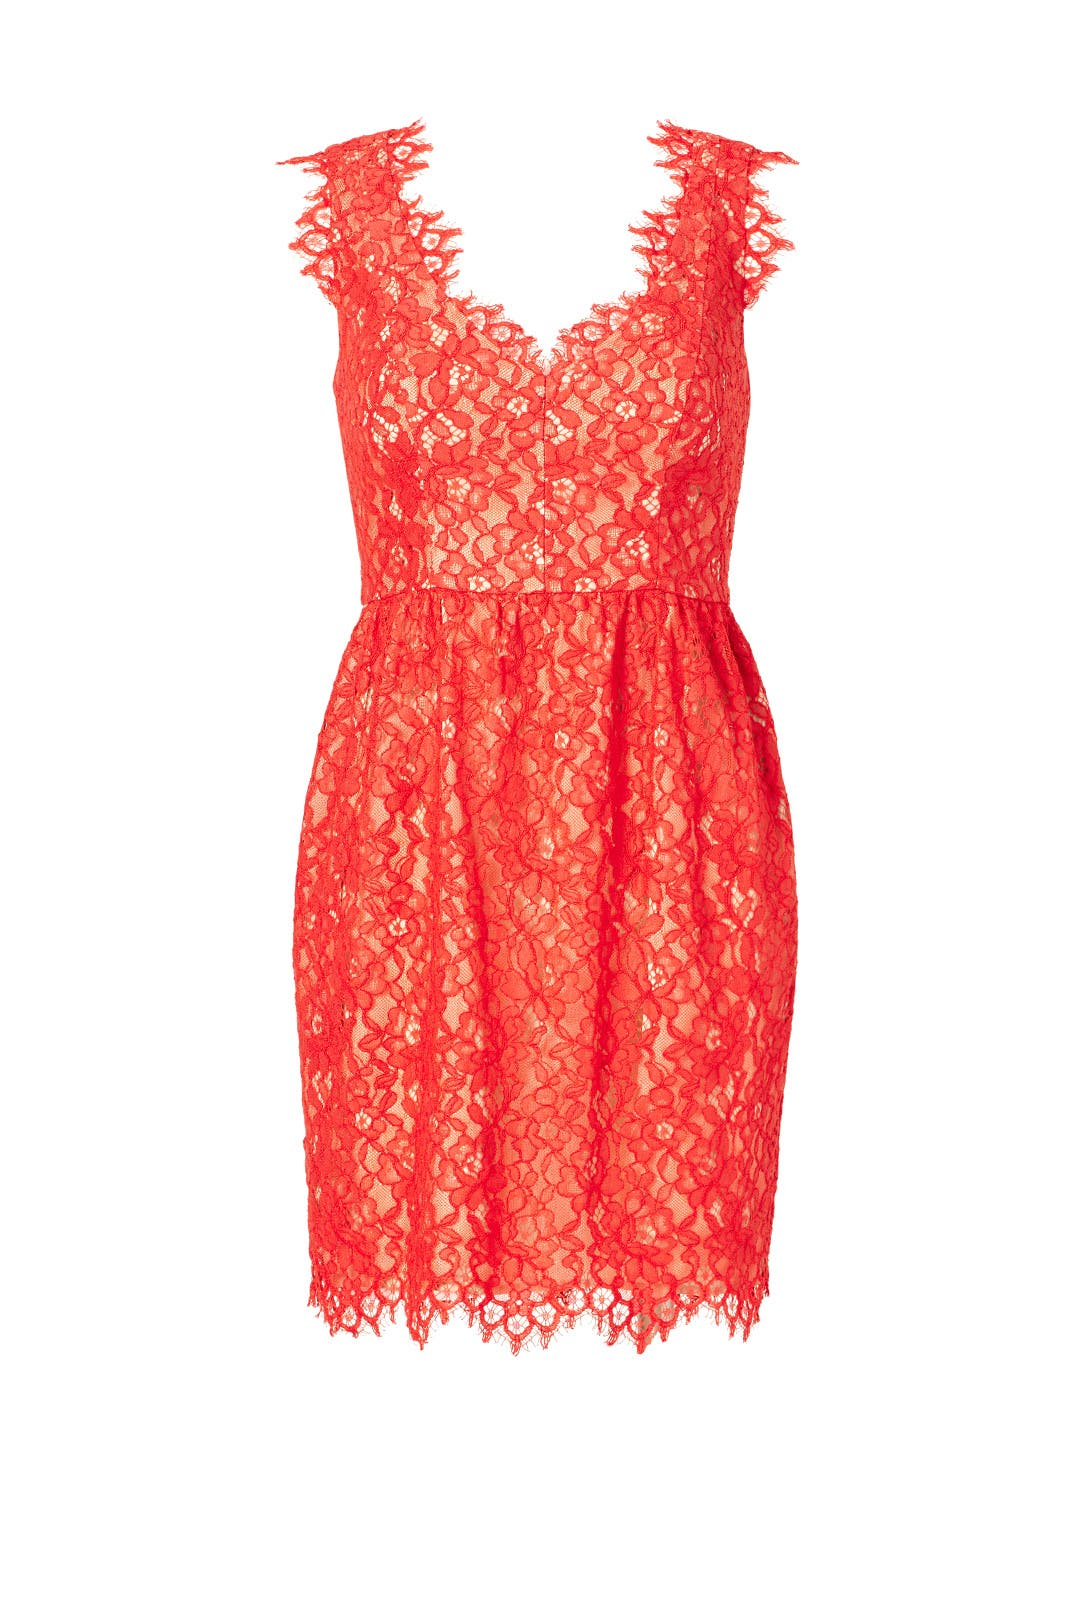 How Do Shoshanna Dresses Fit Lace Sierra Dress by Shoshanna